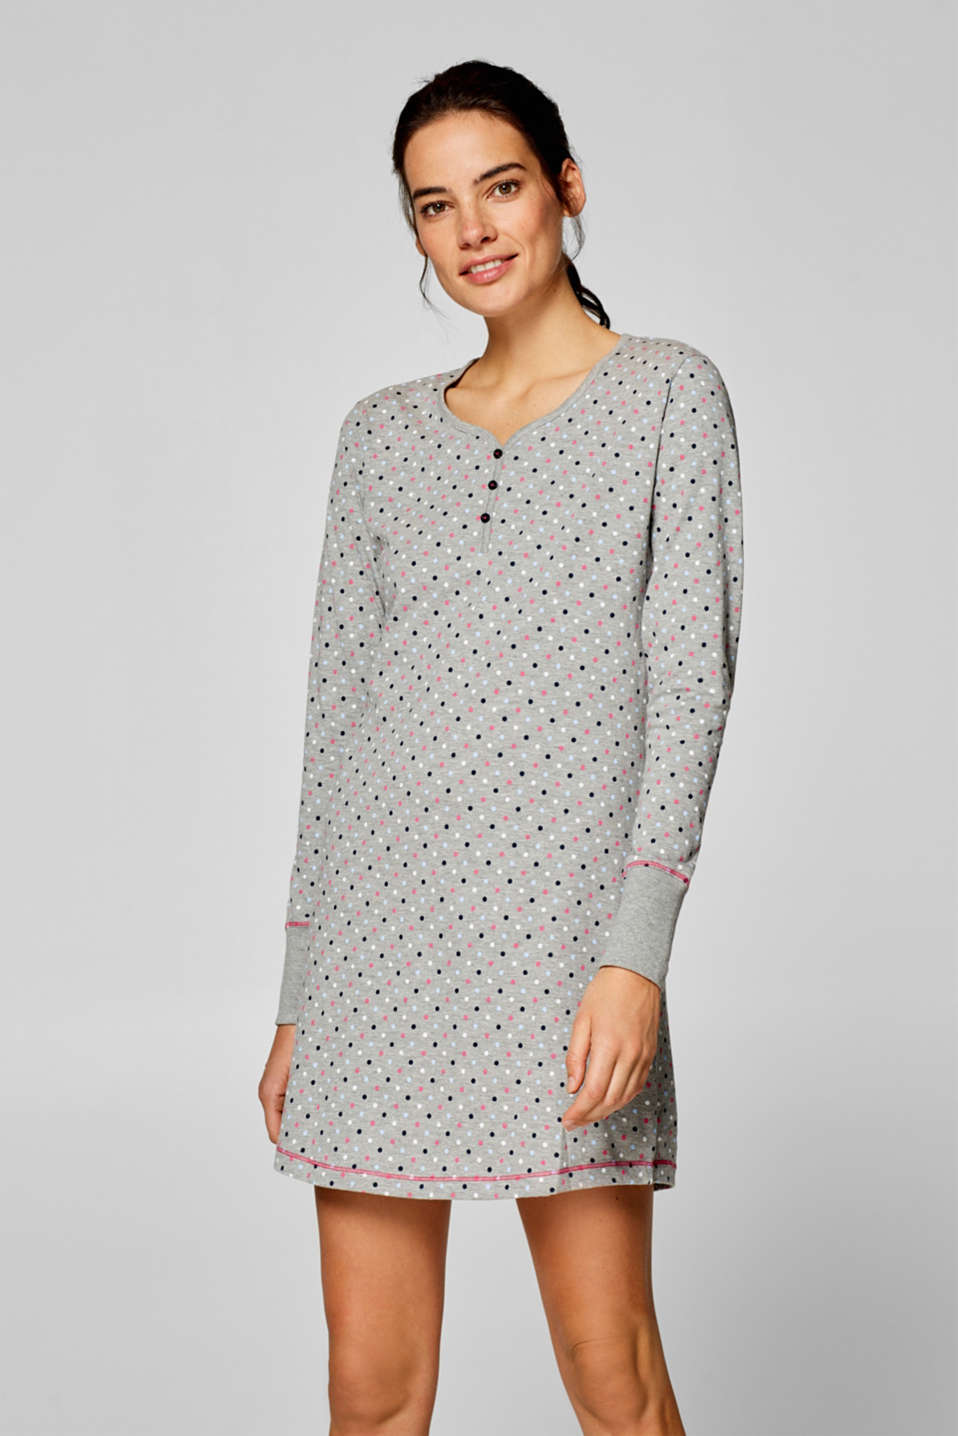 Esprit - Jersey nightshirt with a polka dot print